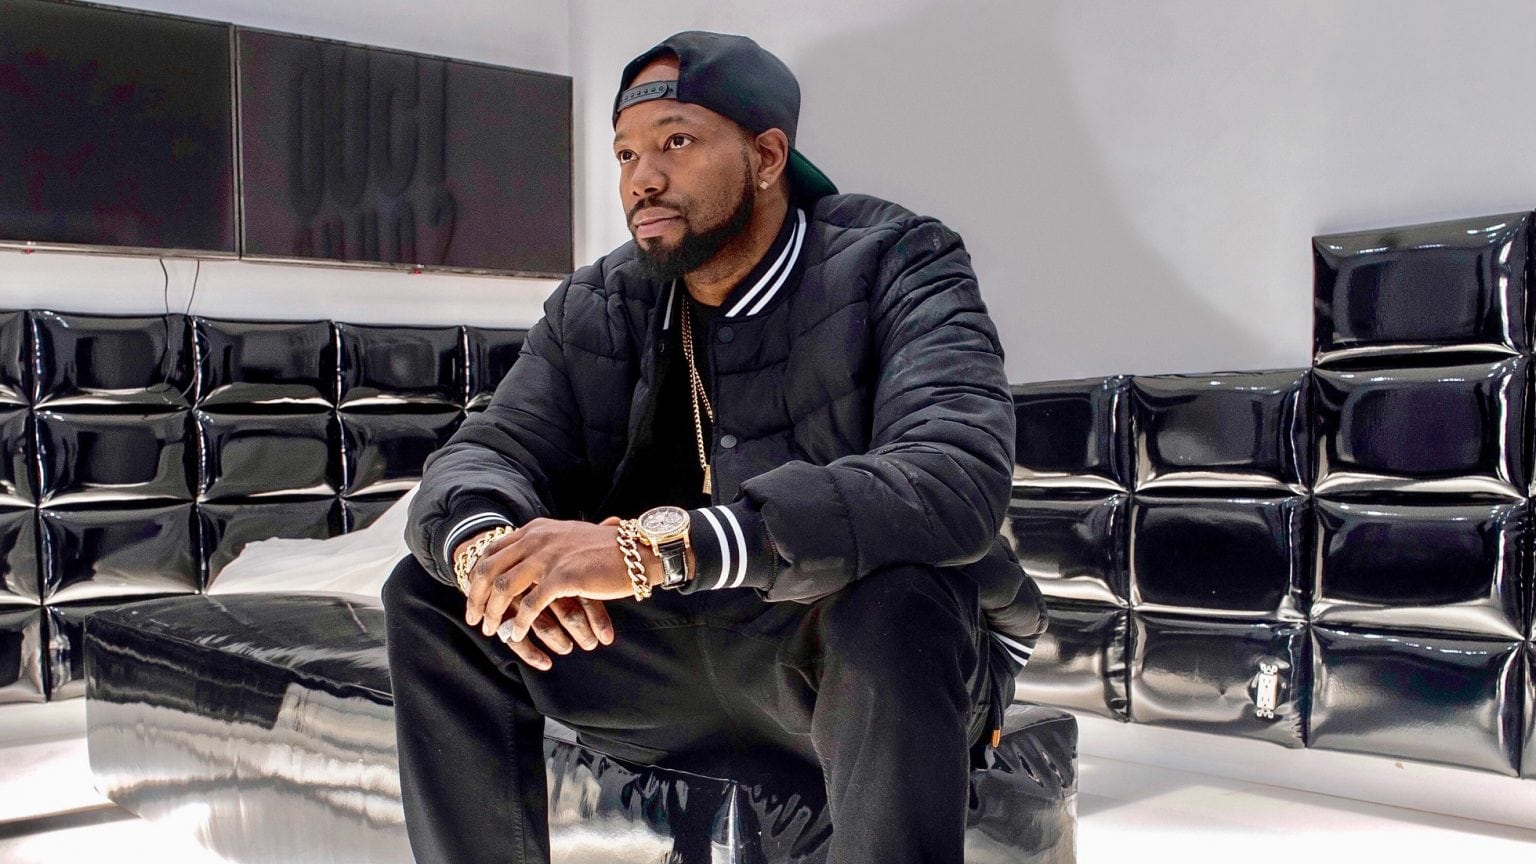 """In Los Angeles, young creatives will receive mentorship from Grammy Award-winning producer Larrance """"Rance"""" Dopson, documentary photographer and filmmaker Bethany Mollenkof, and Apple Music's Global Editorial Head of Hip-Hop and R&B Ebro Darden."""